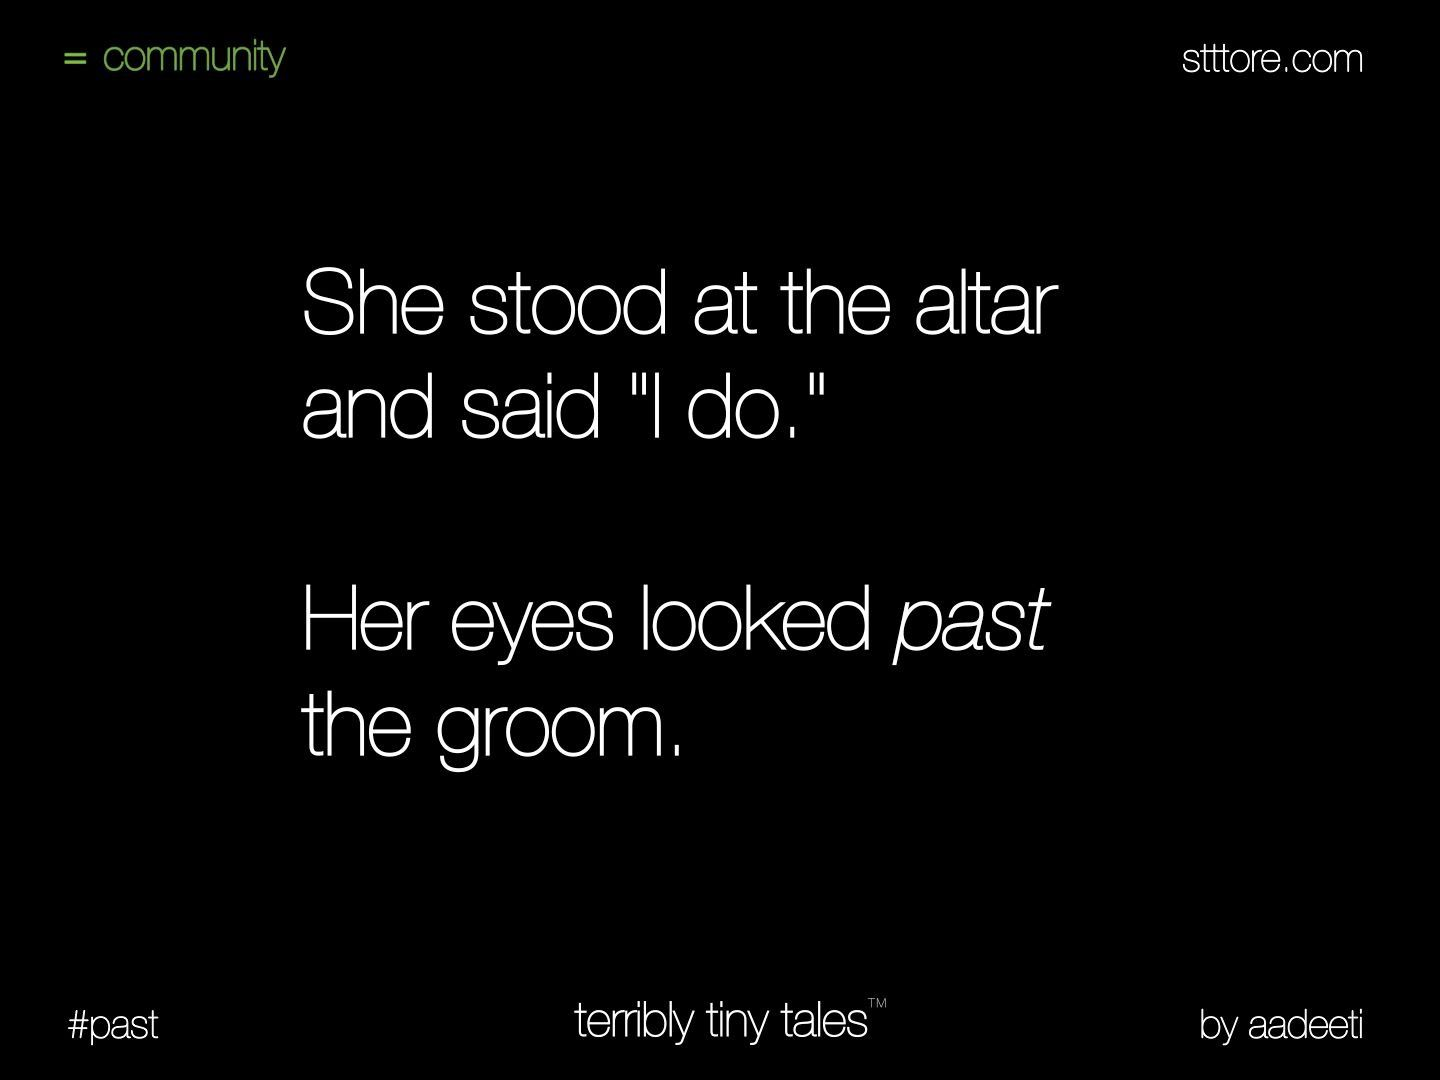 Short stories (With images) | Tiny stories, Romance quotes ...